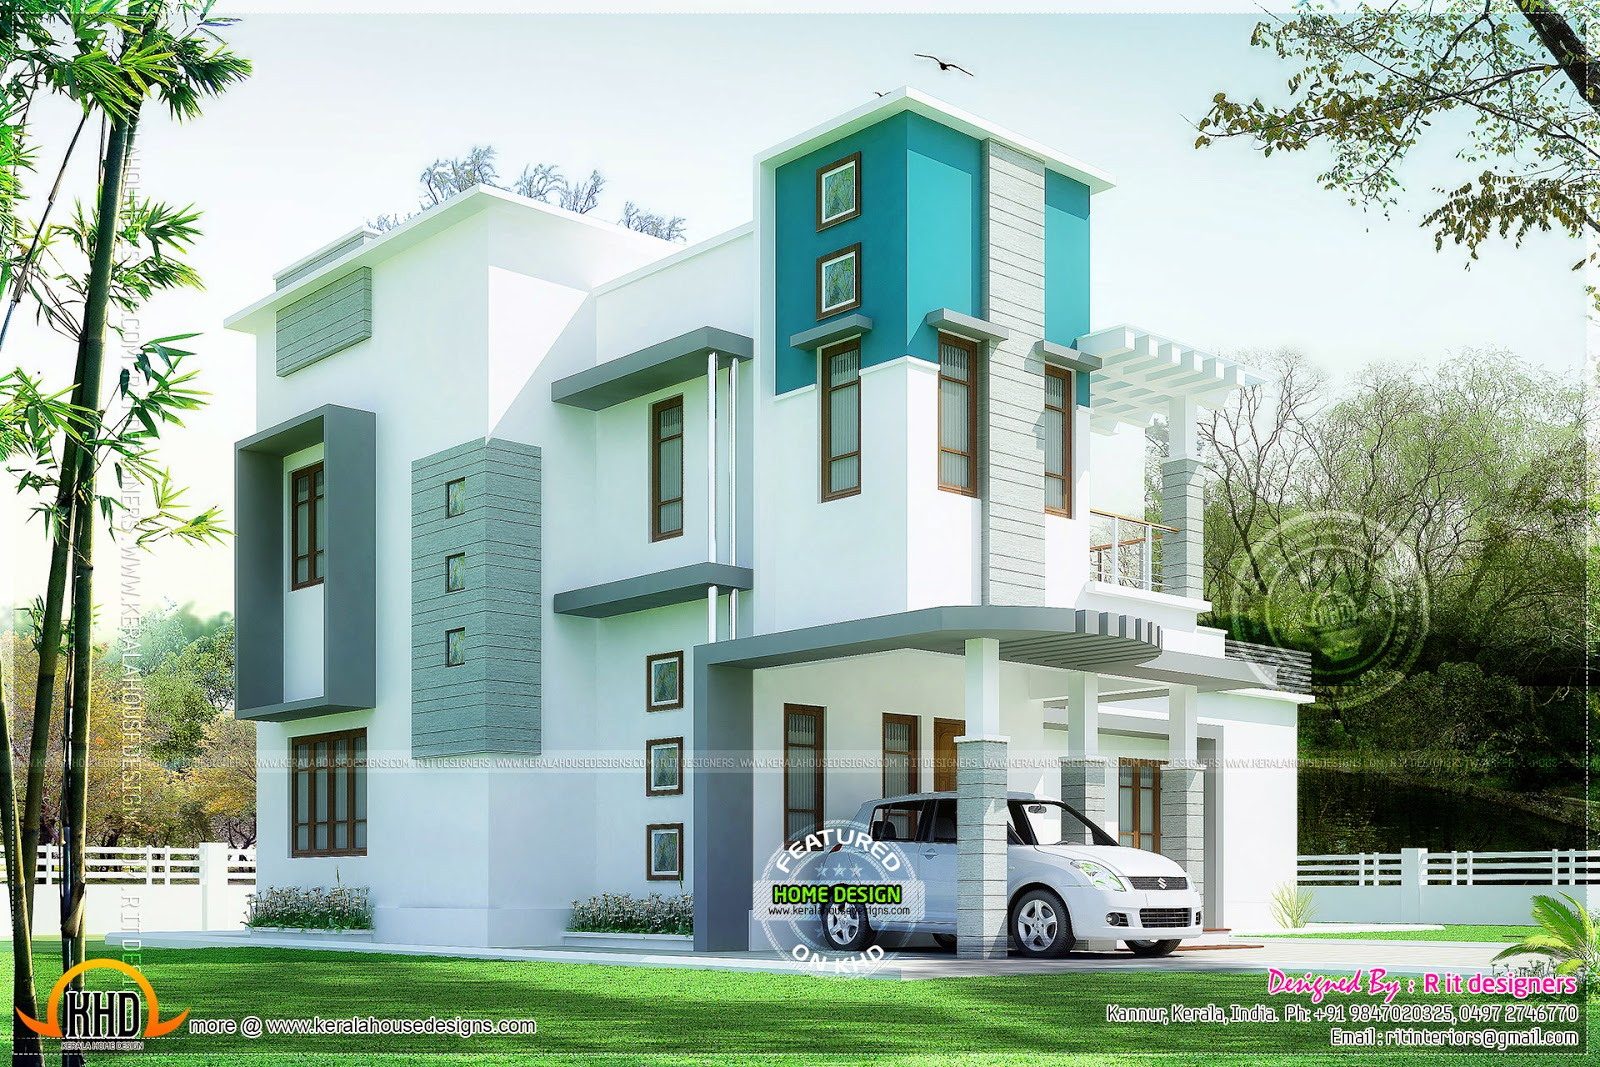 Beautiful 3 bedroom modern house kerala home design and for Modern 3 bedroom house